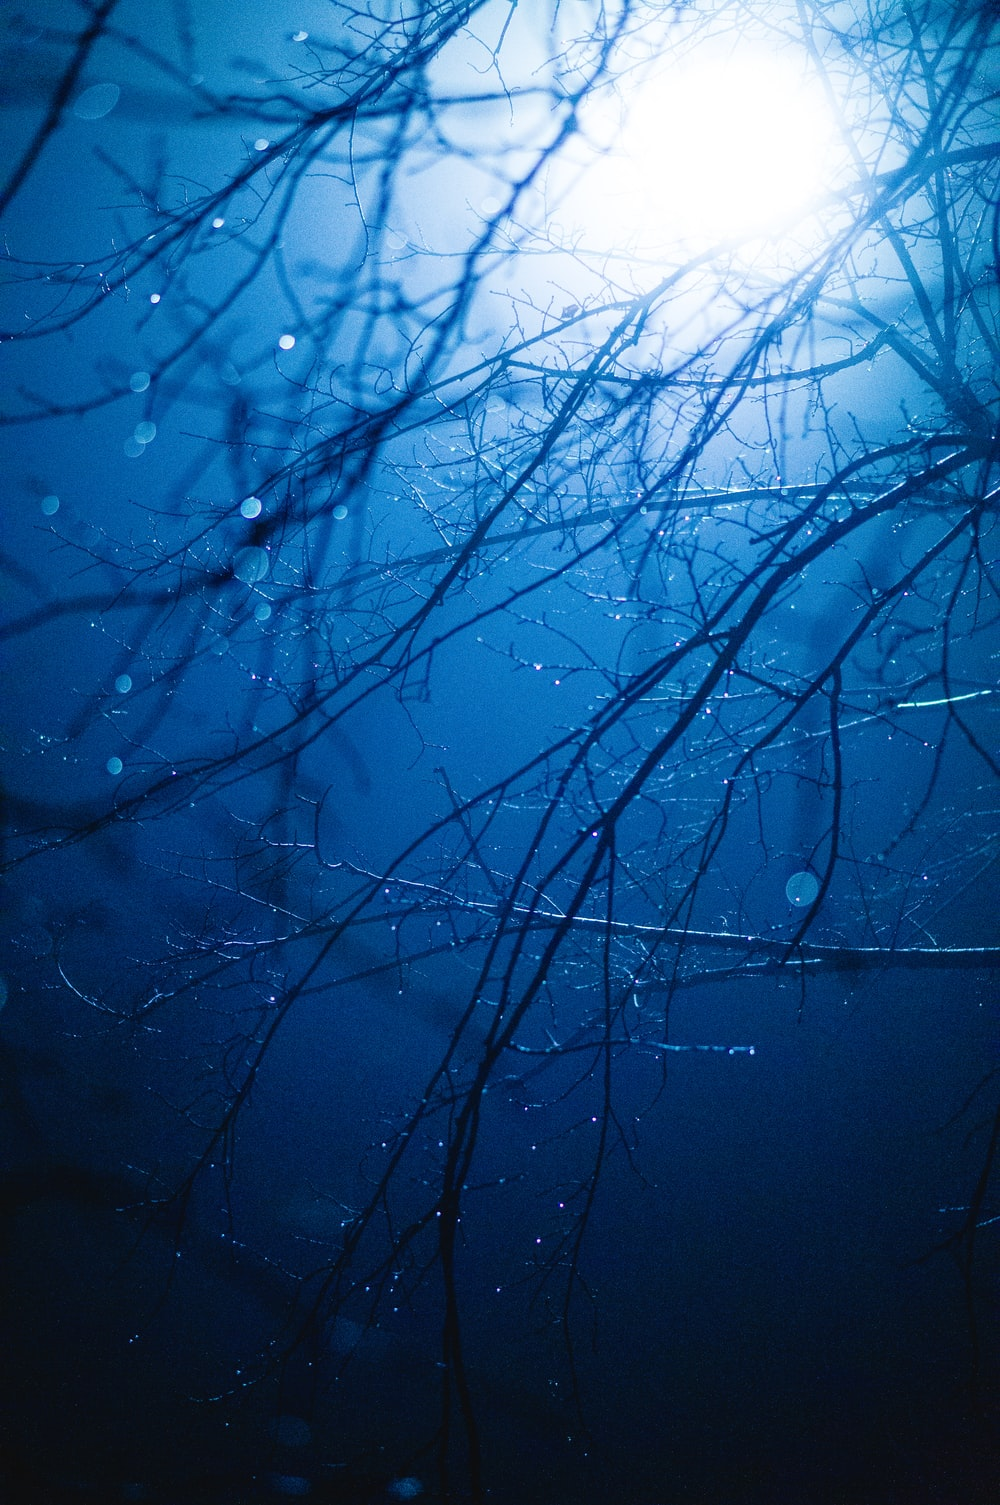 water droplets on bare tree